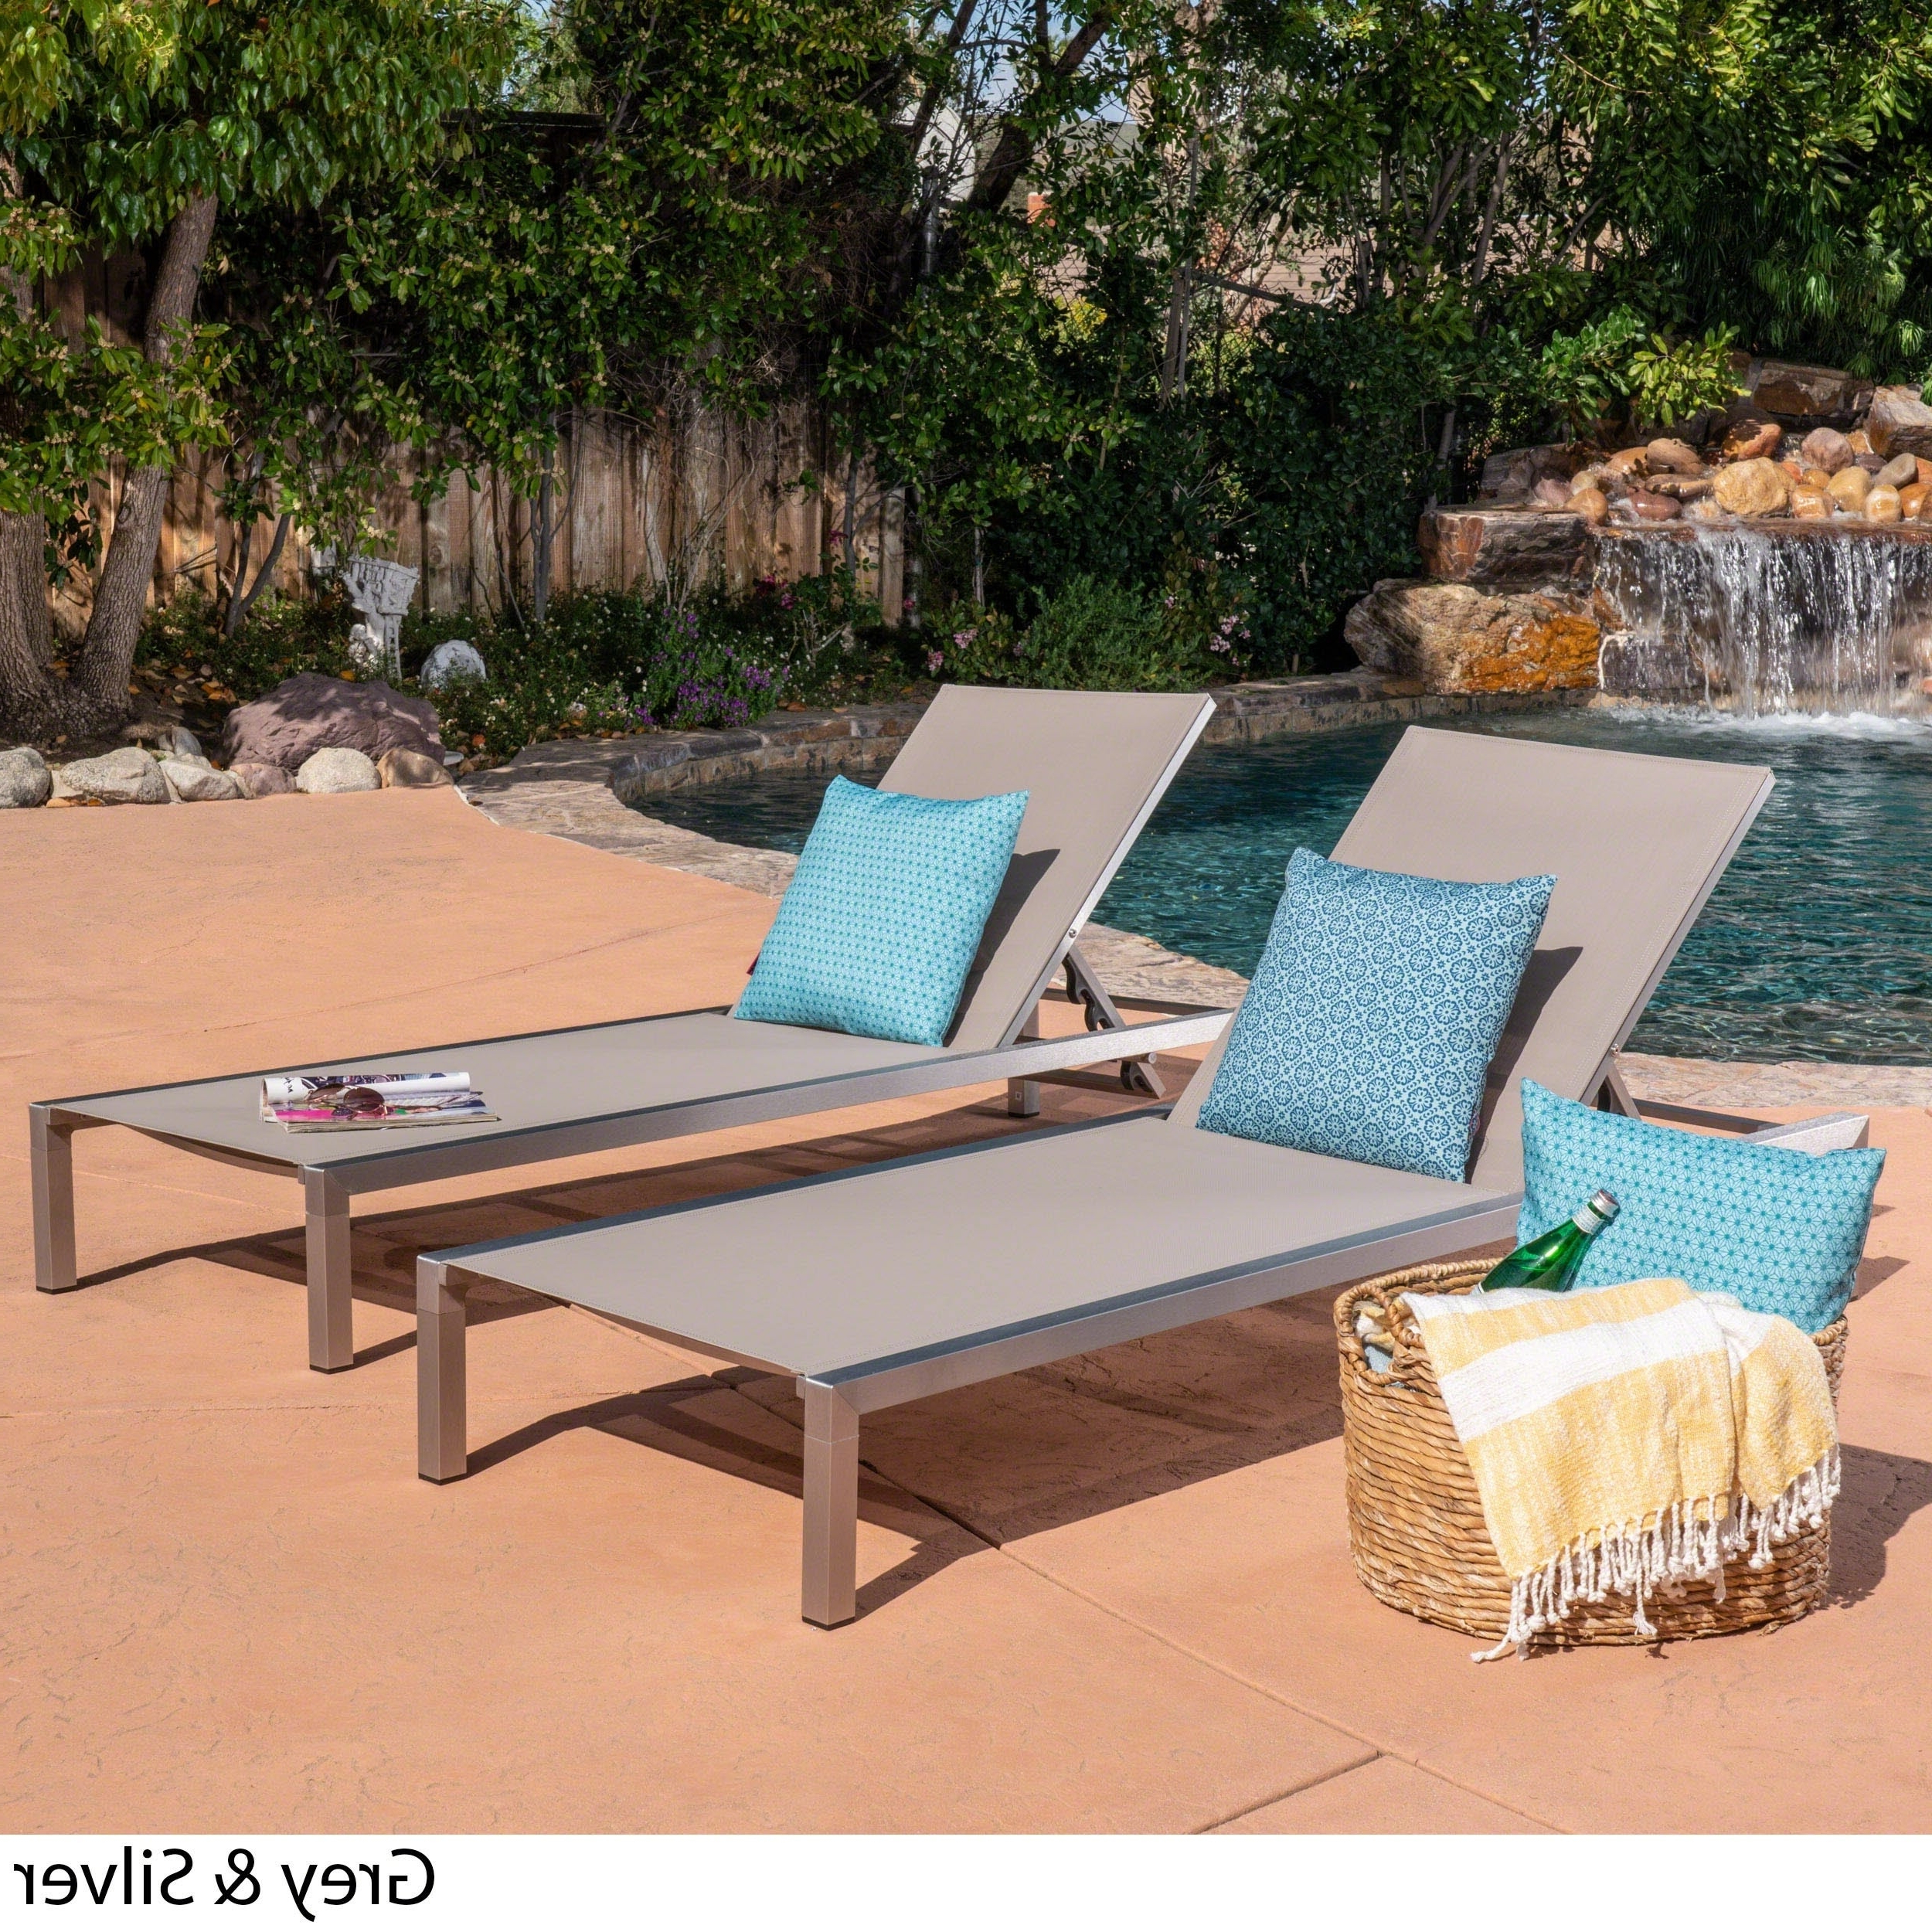 Most Recent Navan Outdoor Chaise Lounge (set Of 2)christopher Knight Home Throughout Havenside Home Surfside Rutkoske Outdoor Wood Chaise Lounges (View 21 of 25)